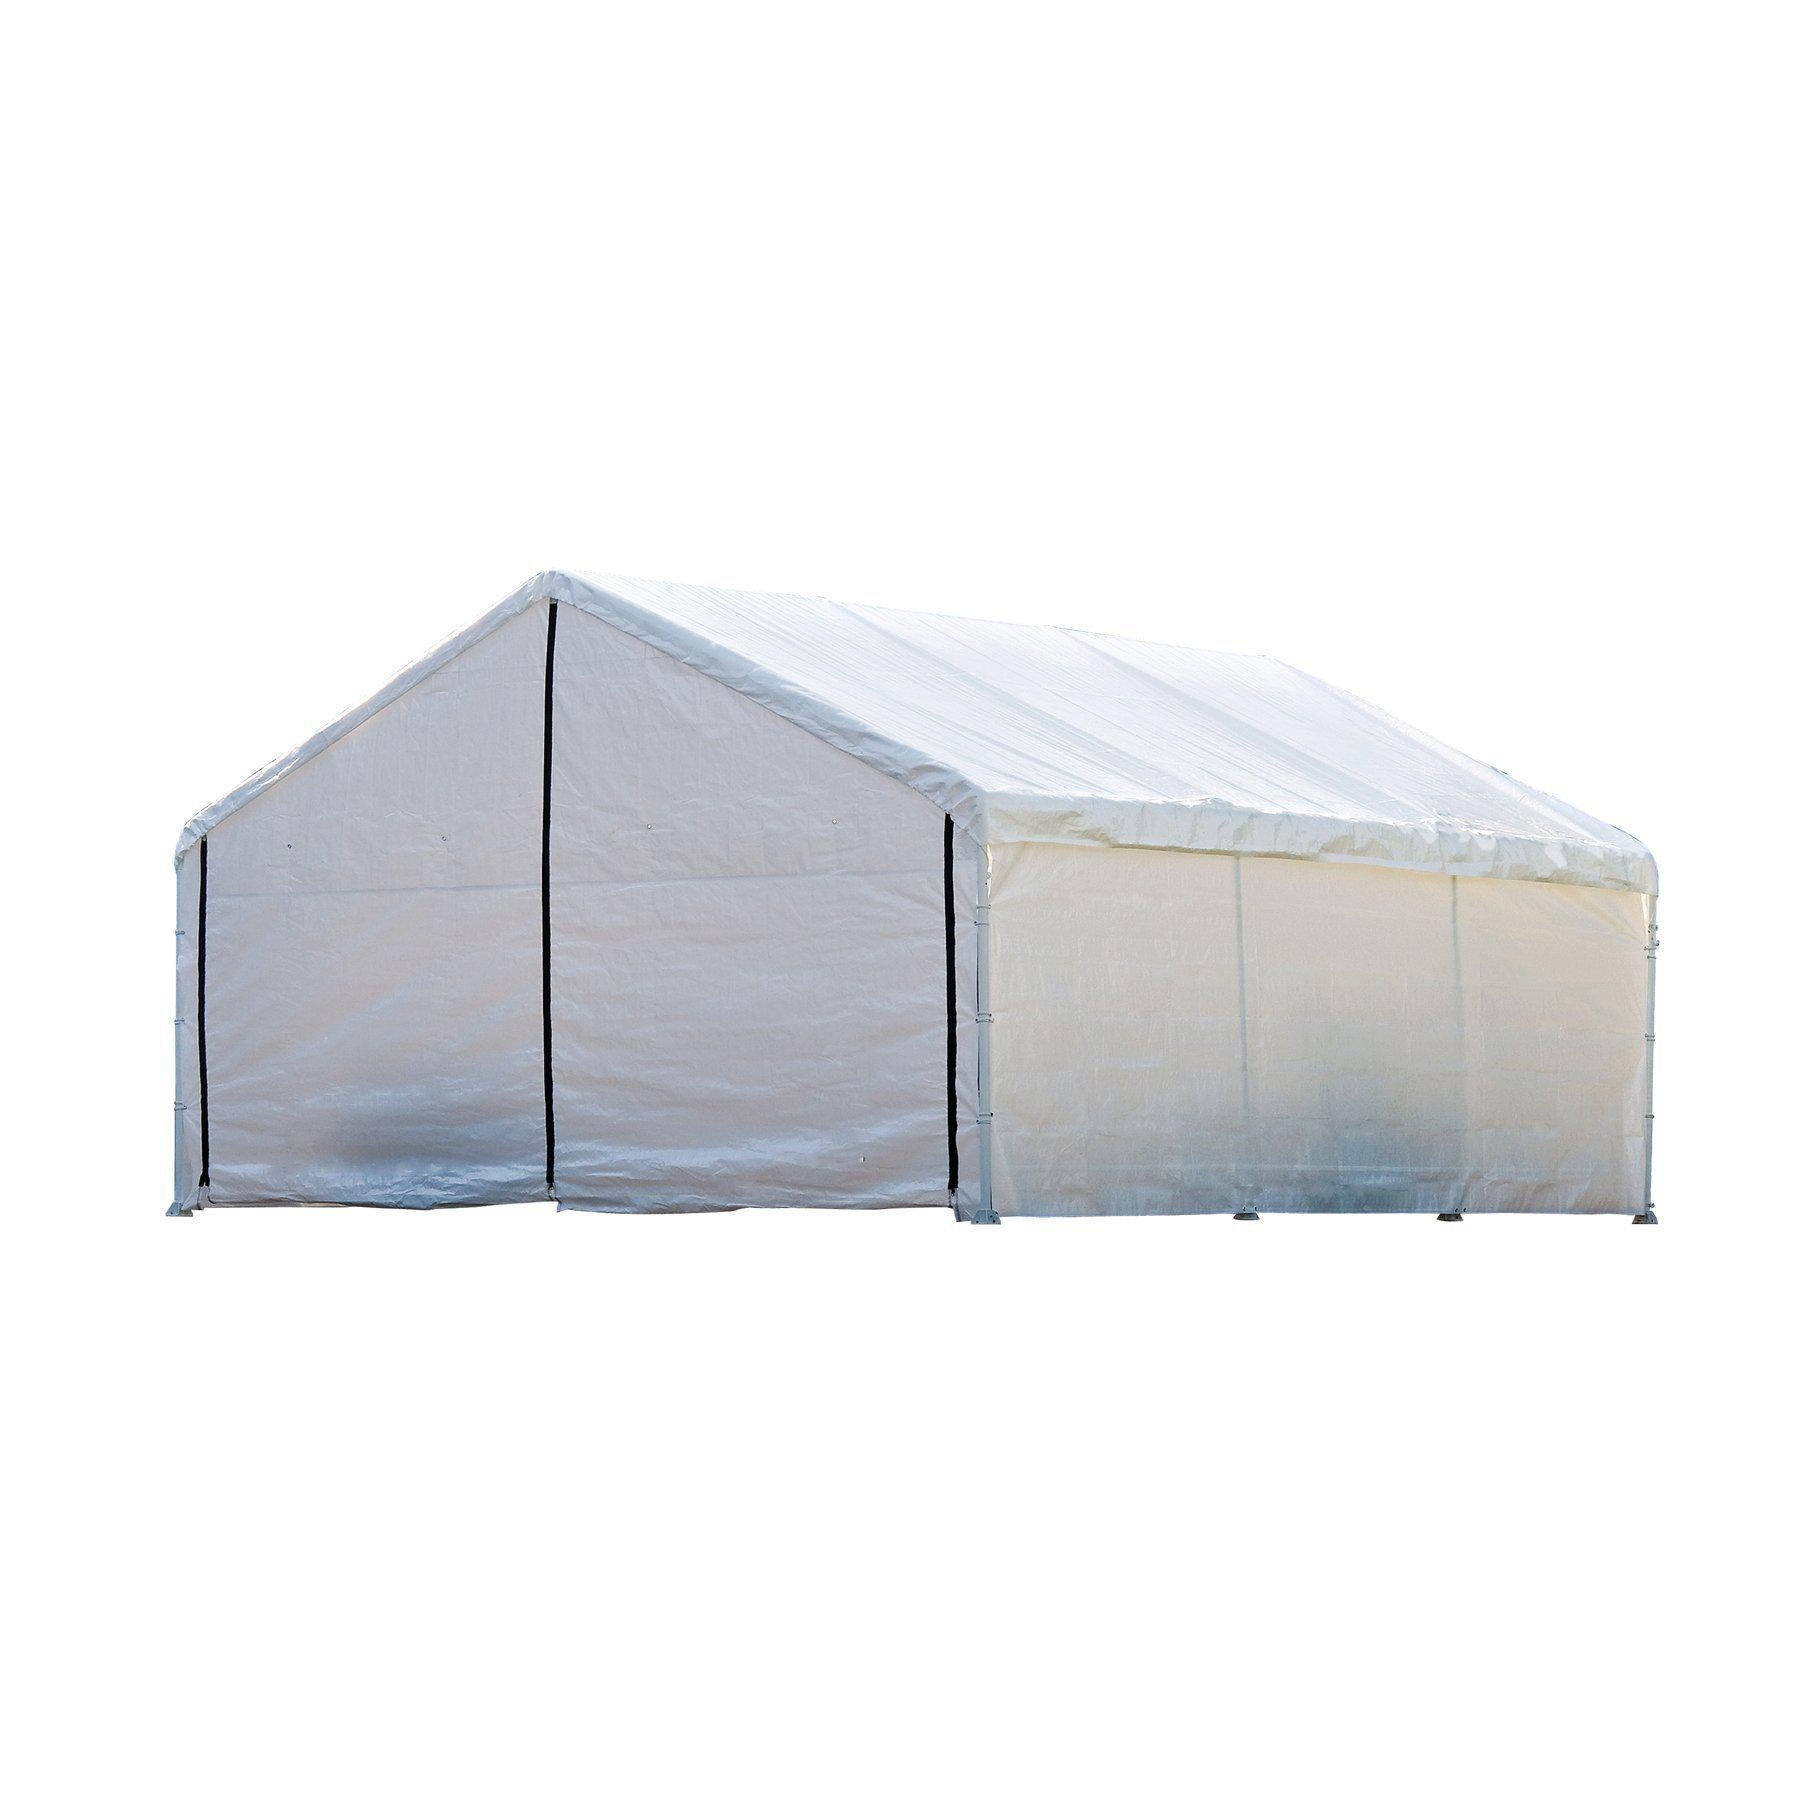 ShelterLogic 18-Feet Super Max Canopy Accessories Enclosure Kit